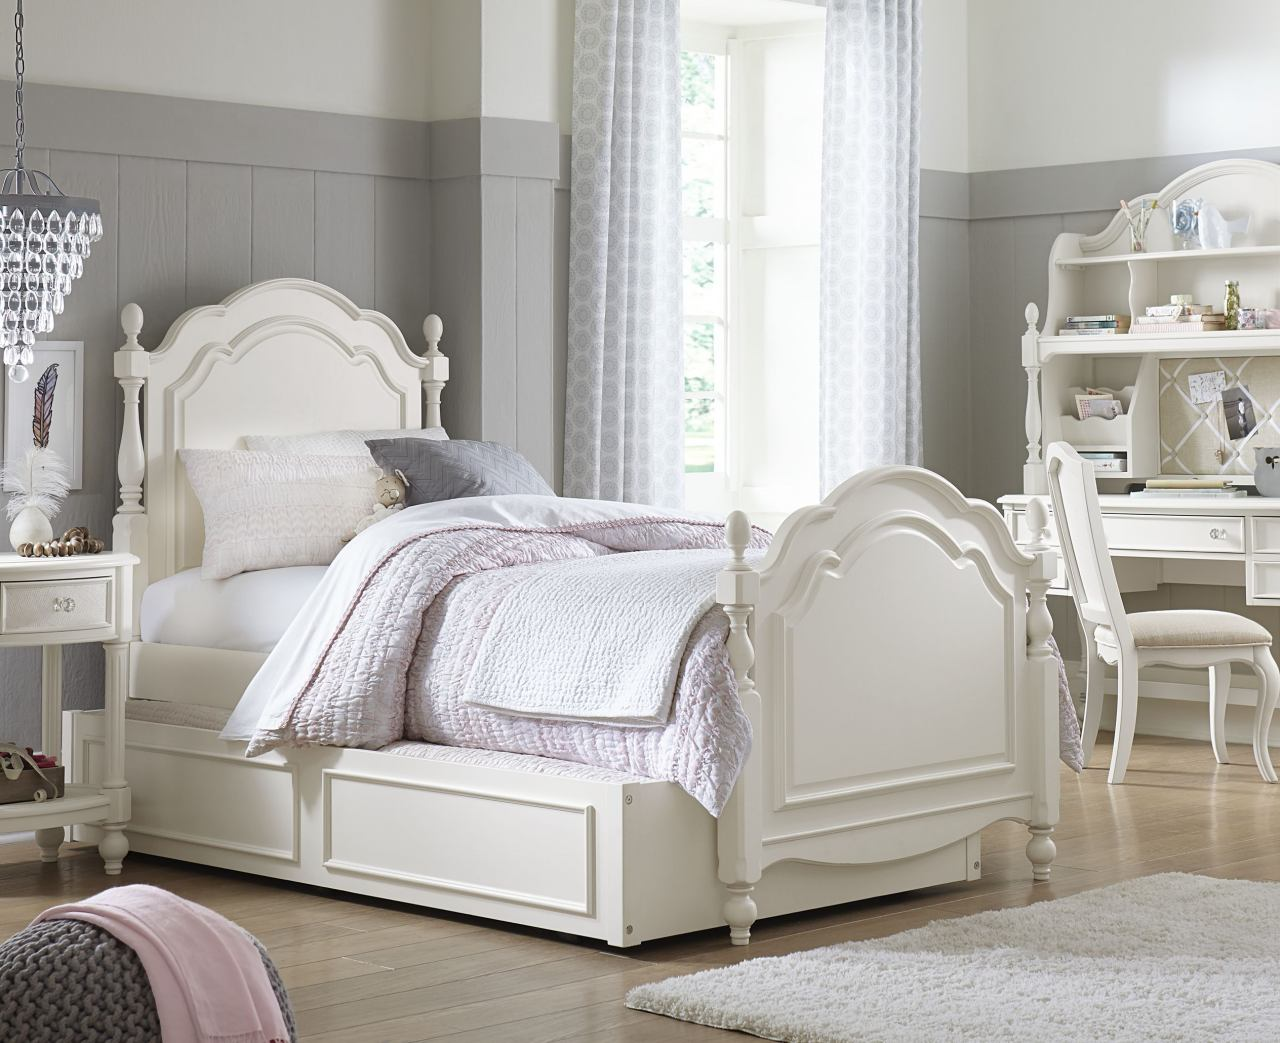 Legacy Classic Kids Harmony 4 Piece Summerset Low Post Bedroom Set in Antique Linen White